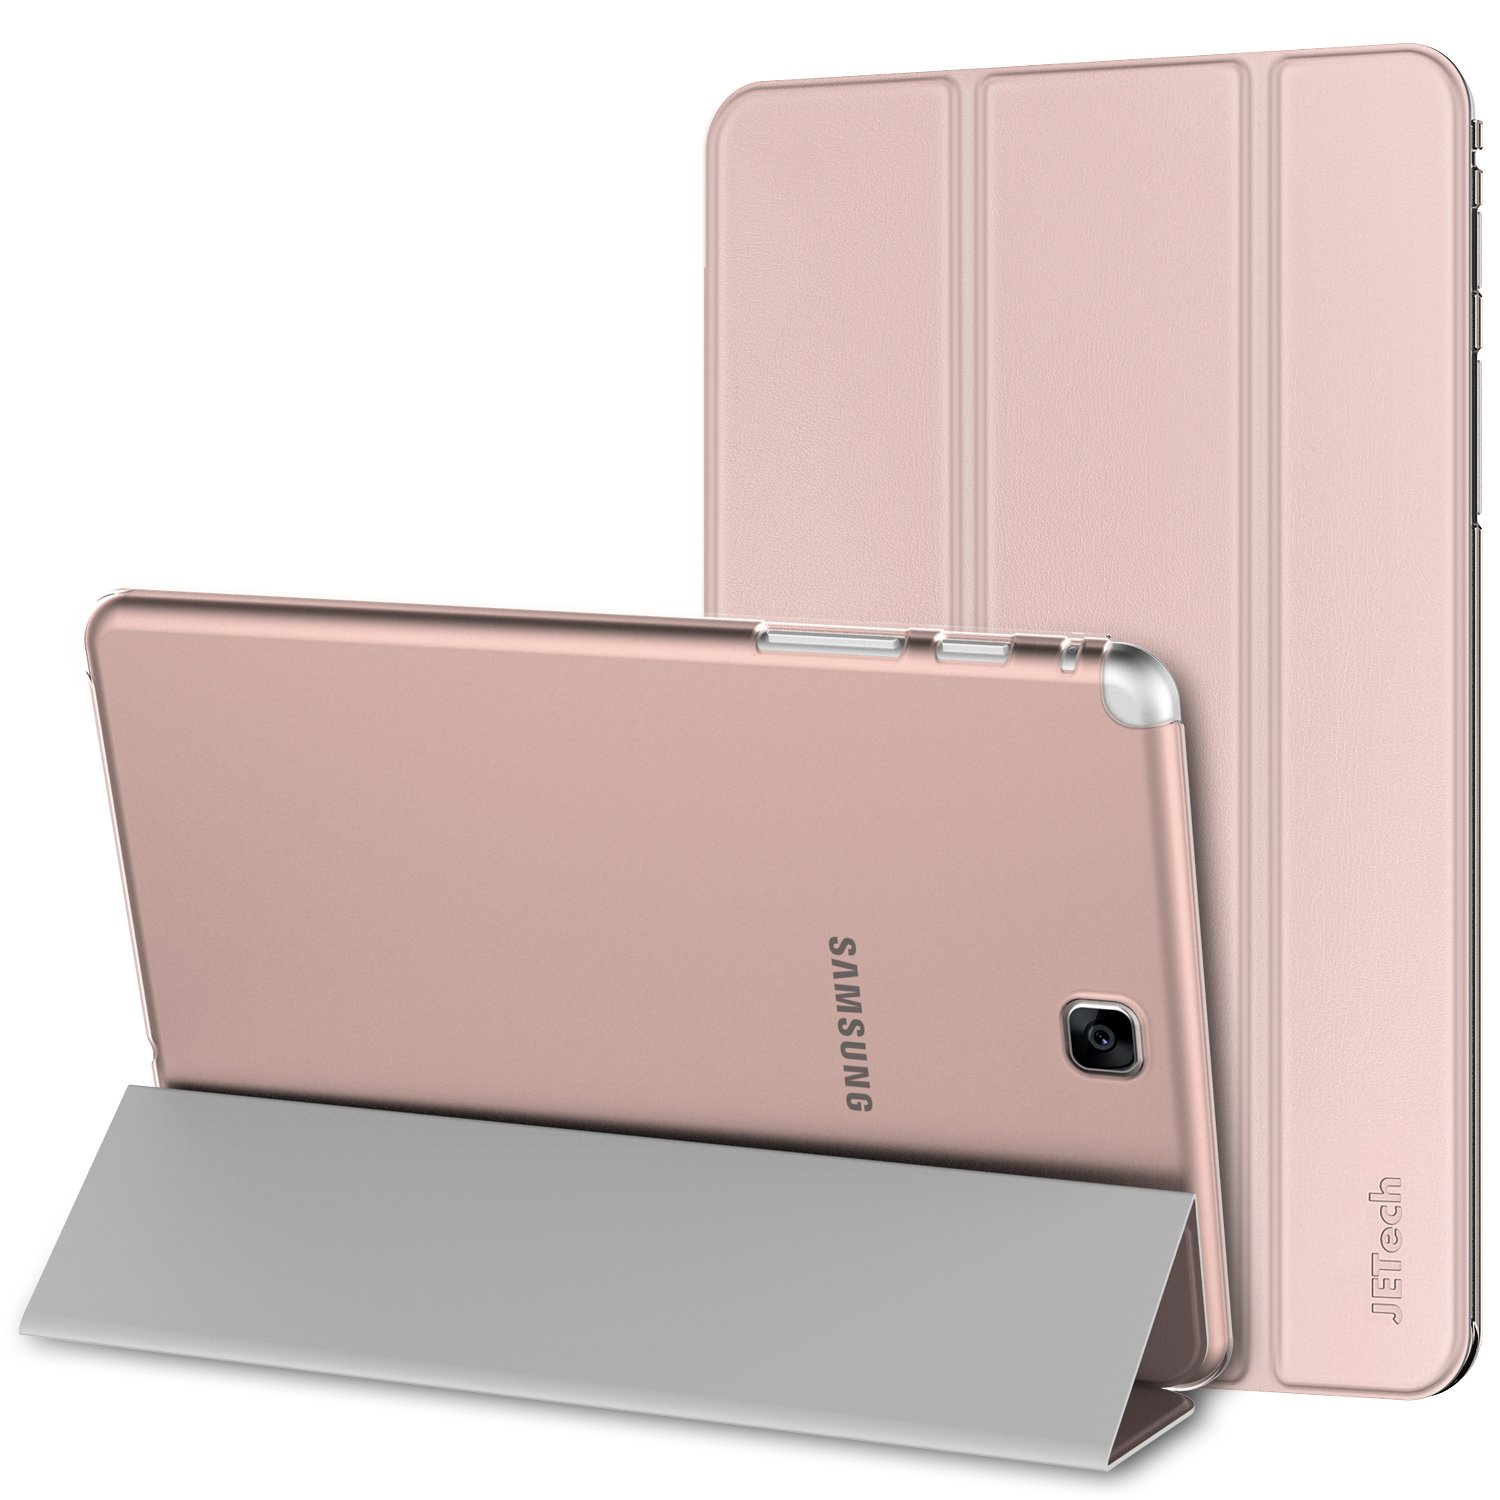 Galaxy Tab A 97 Case Jetech Slim Fit Cover For Spinning Bike Fast Farious Kokoh Samsung Inch Tablet With Auto Sleep Wake Feature Rose Gold Computers